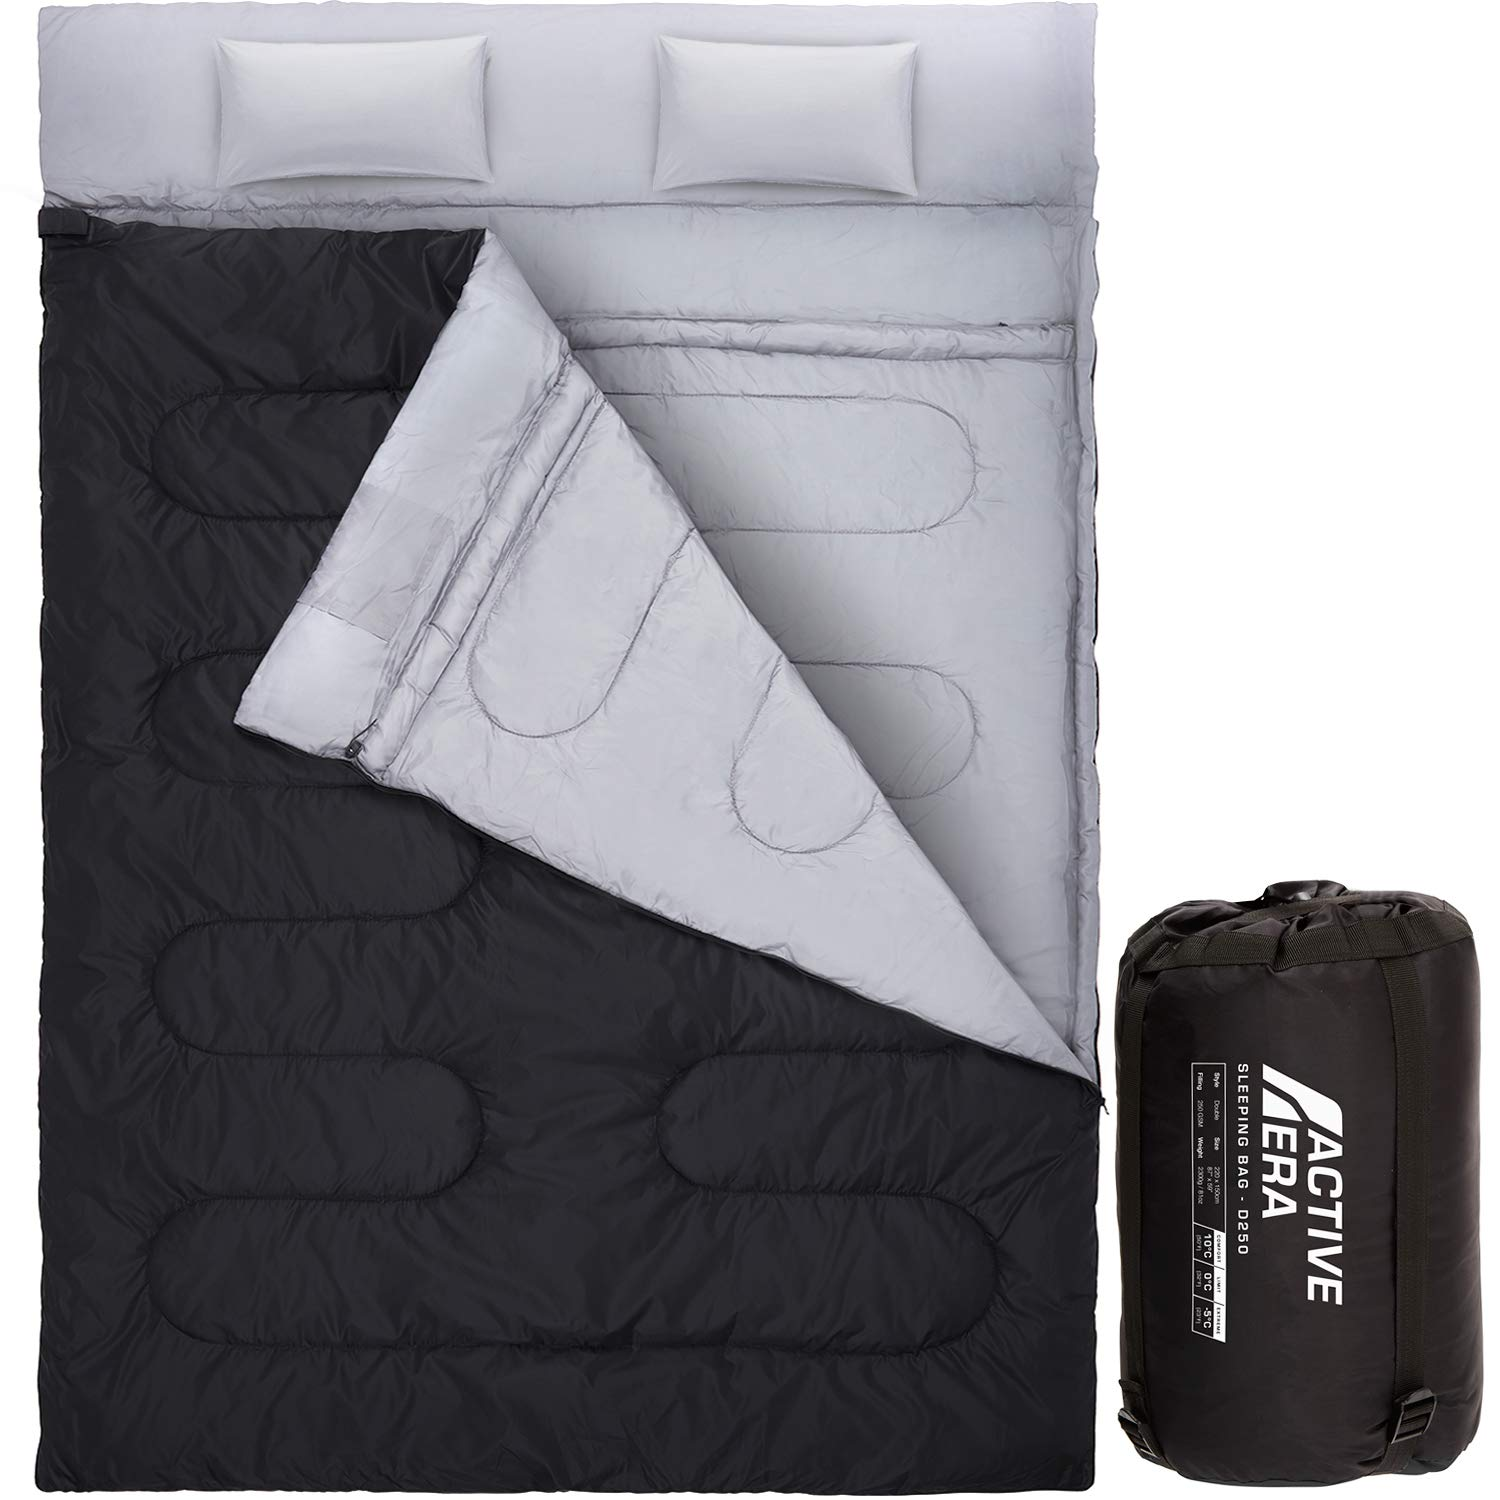 Active Era Double Sleeping Bag - Water Resistant and Lightweight Queen Size with 2 Pillows & Compression Bag, Converts into 2 Singles - 3 Seasons 32F, Perfect for Camping, Hiking, Outdoors & Travel by Active Era